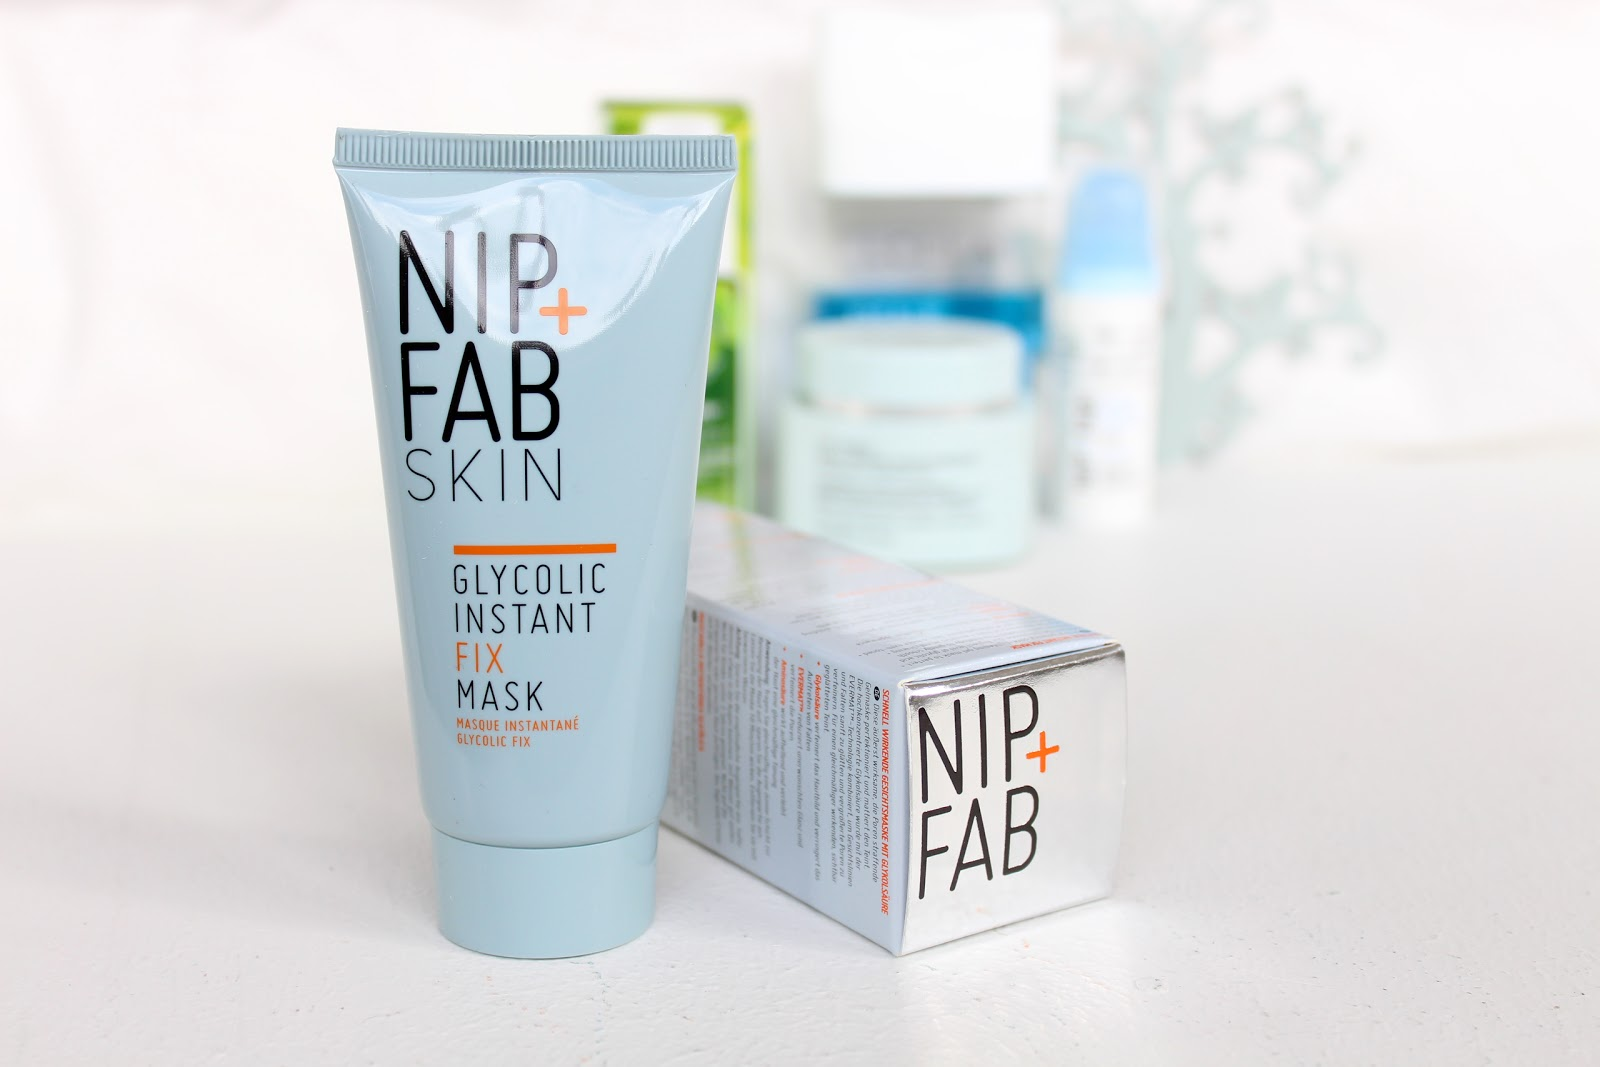 Nip + Fab Glycolic Instant Fix Mask Review